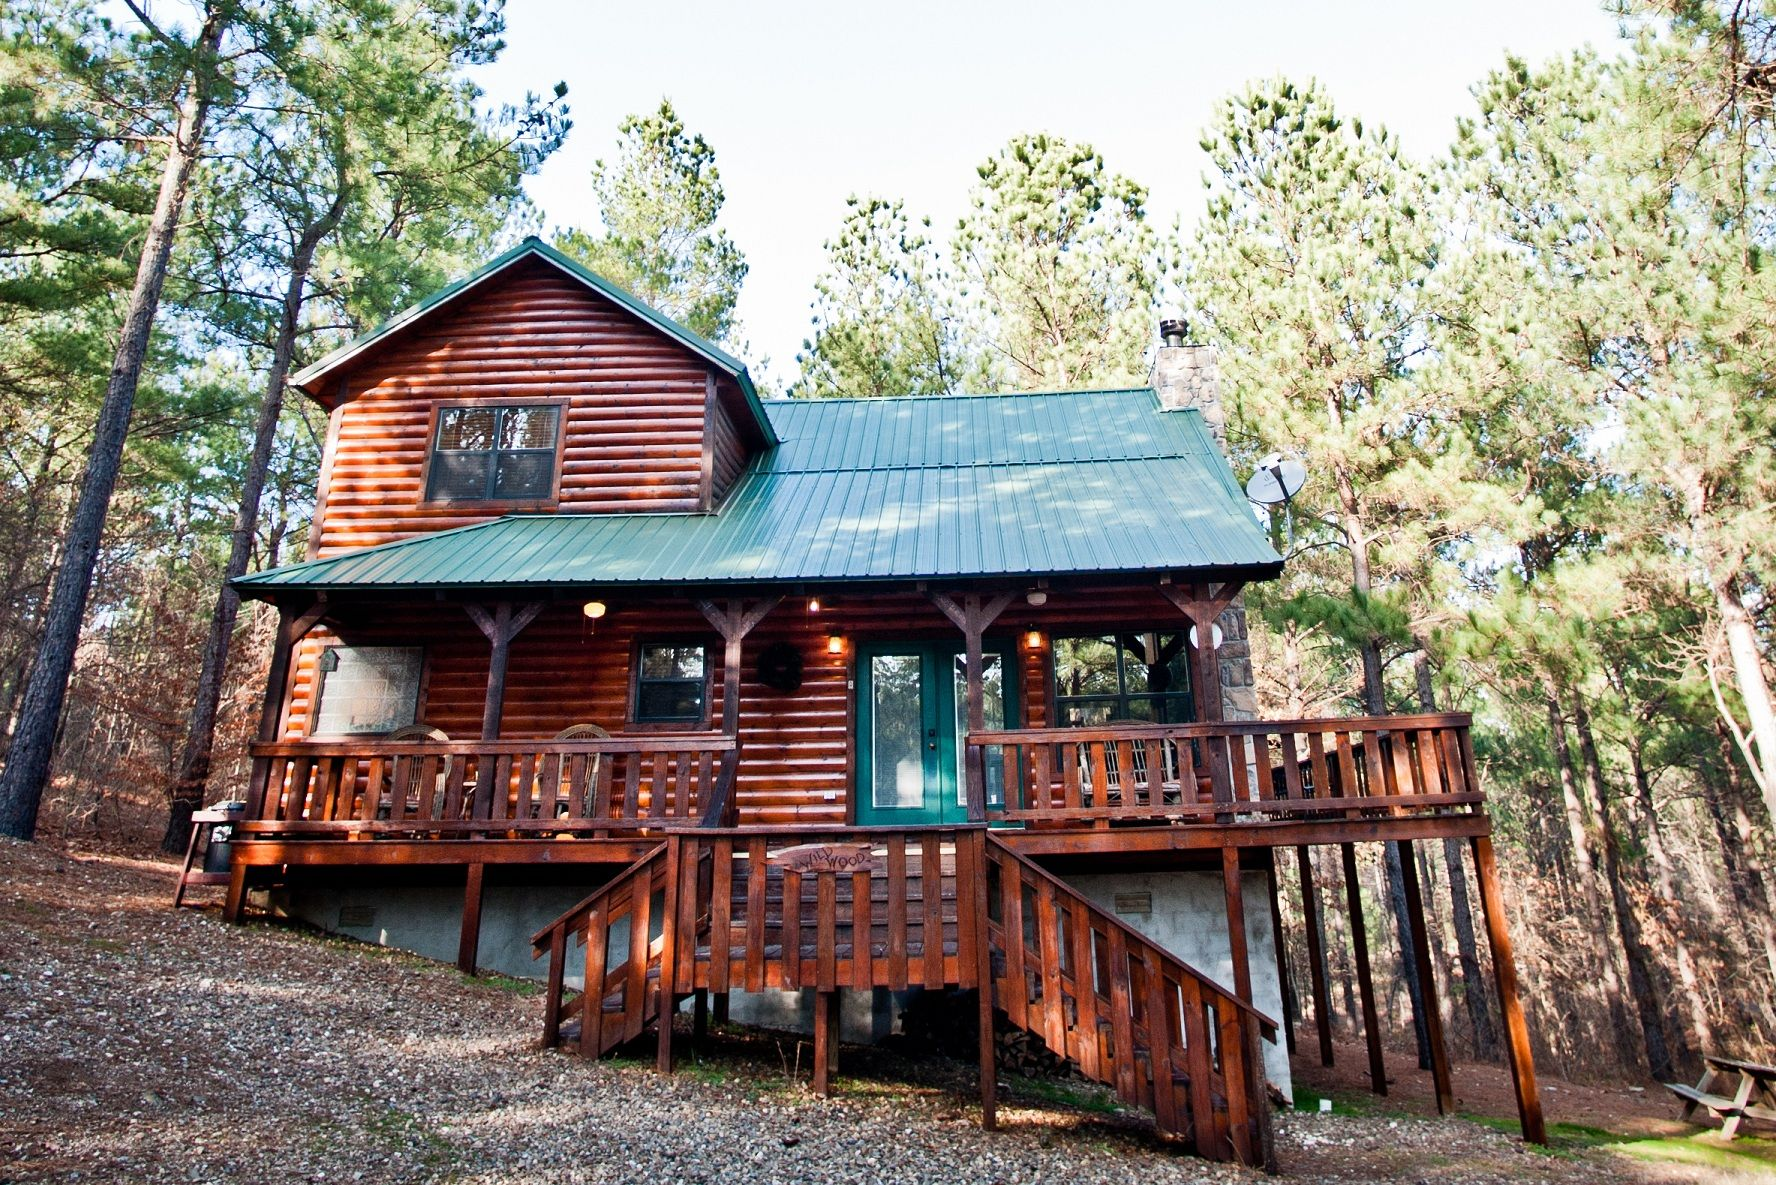 Merveilleux The Wildwood Cabin, Minutes From Broken Bow Lake And Beavers Bend State  Park In Oklahoma